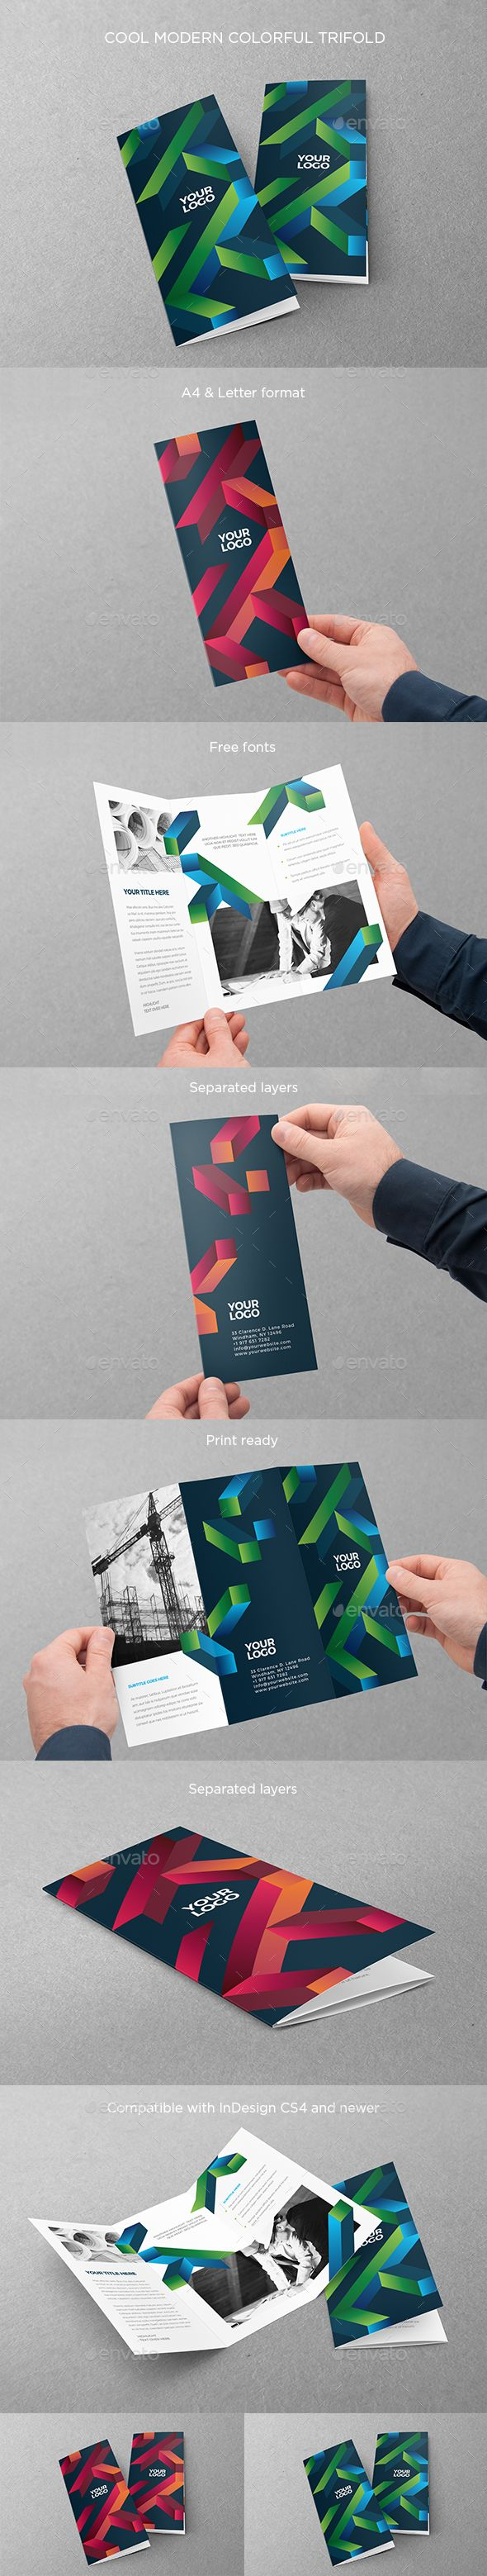 Cool Modern Colorful Trifold Brochure Template InDesign INDD